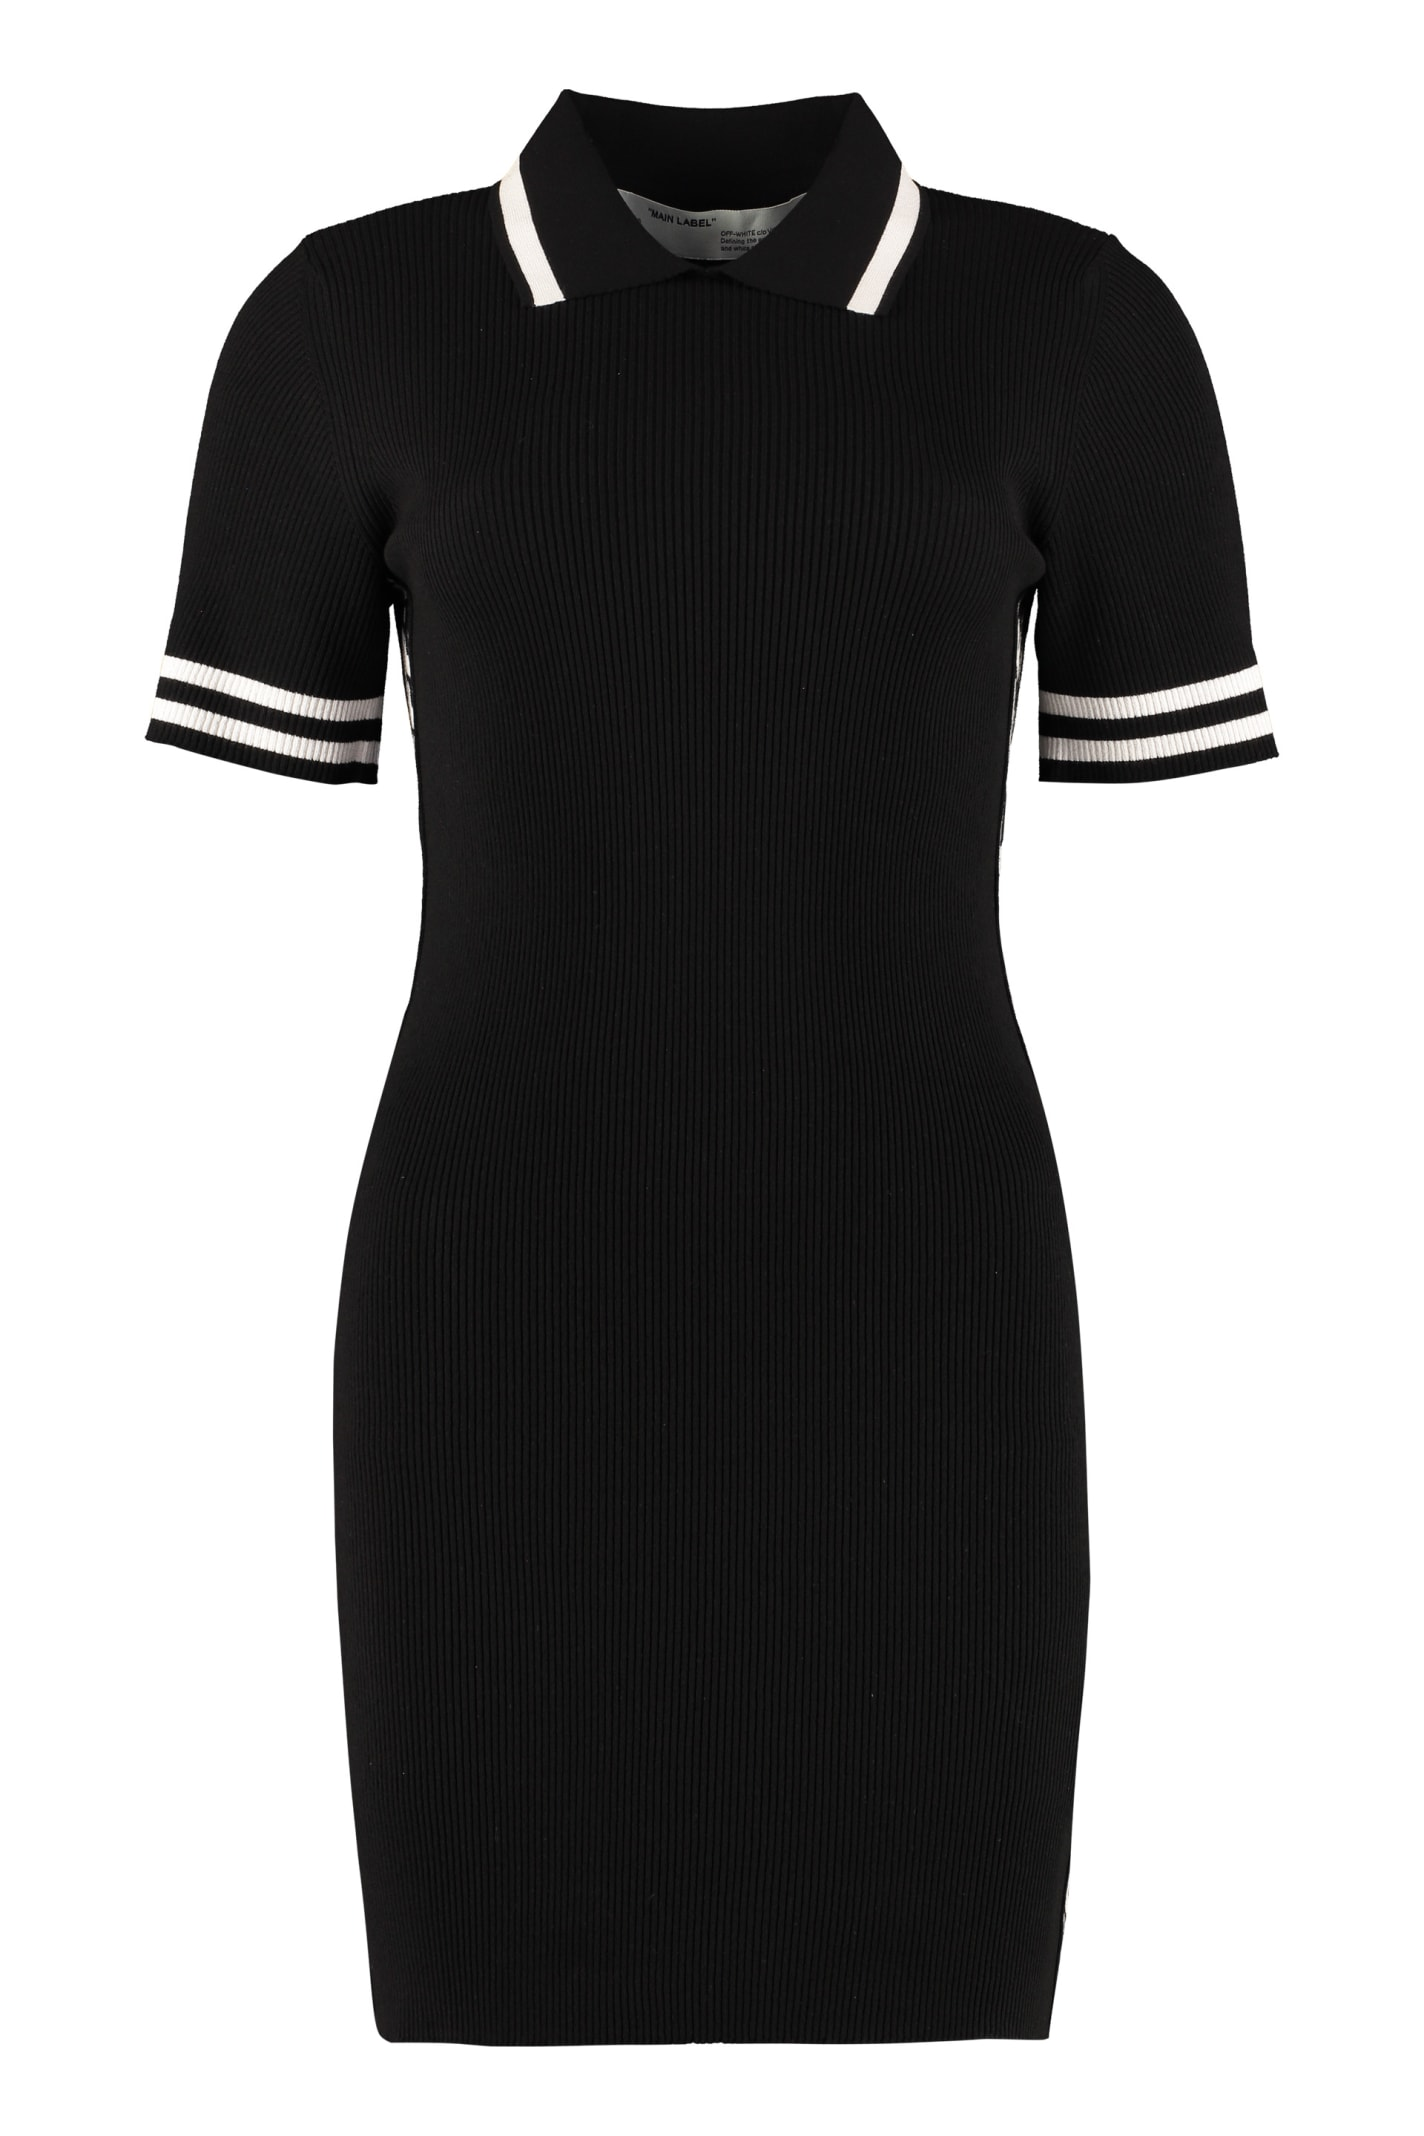 Buy Off-White Industrial Ribbed Knit Dress online, shop Off-White with free shipping